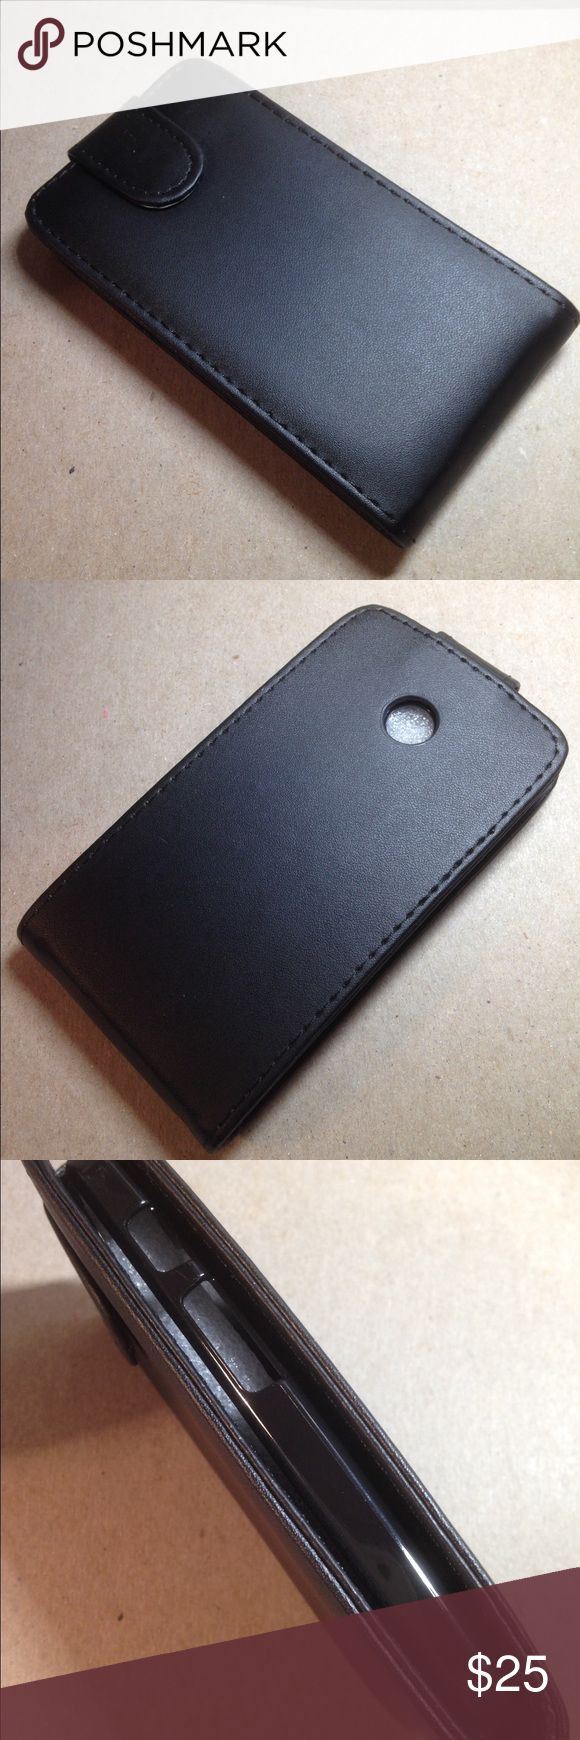 Black leather MotoE 2nd generation case NWT in package, black leather 2nd generation Moto E flip case. Protects screen from scratches and damages with a hard plastic  snap in inner case to keep phone in place. Please see my other listings for additional styles sizes and colors. All sales final no refunds, exchanges or returns Gift boxes not included. Moto E Other